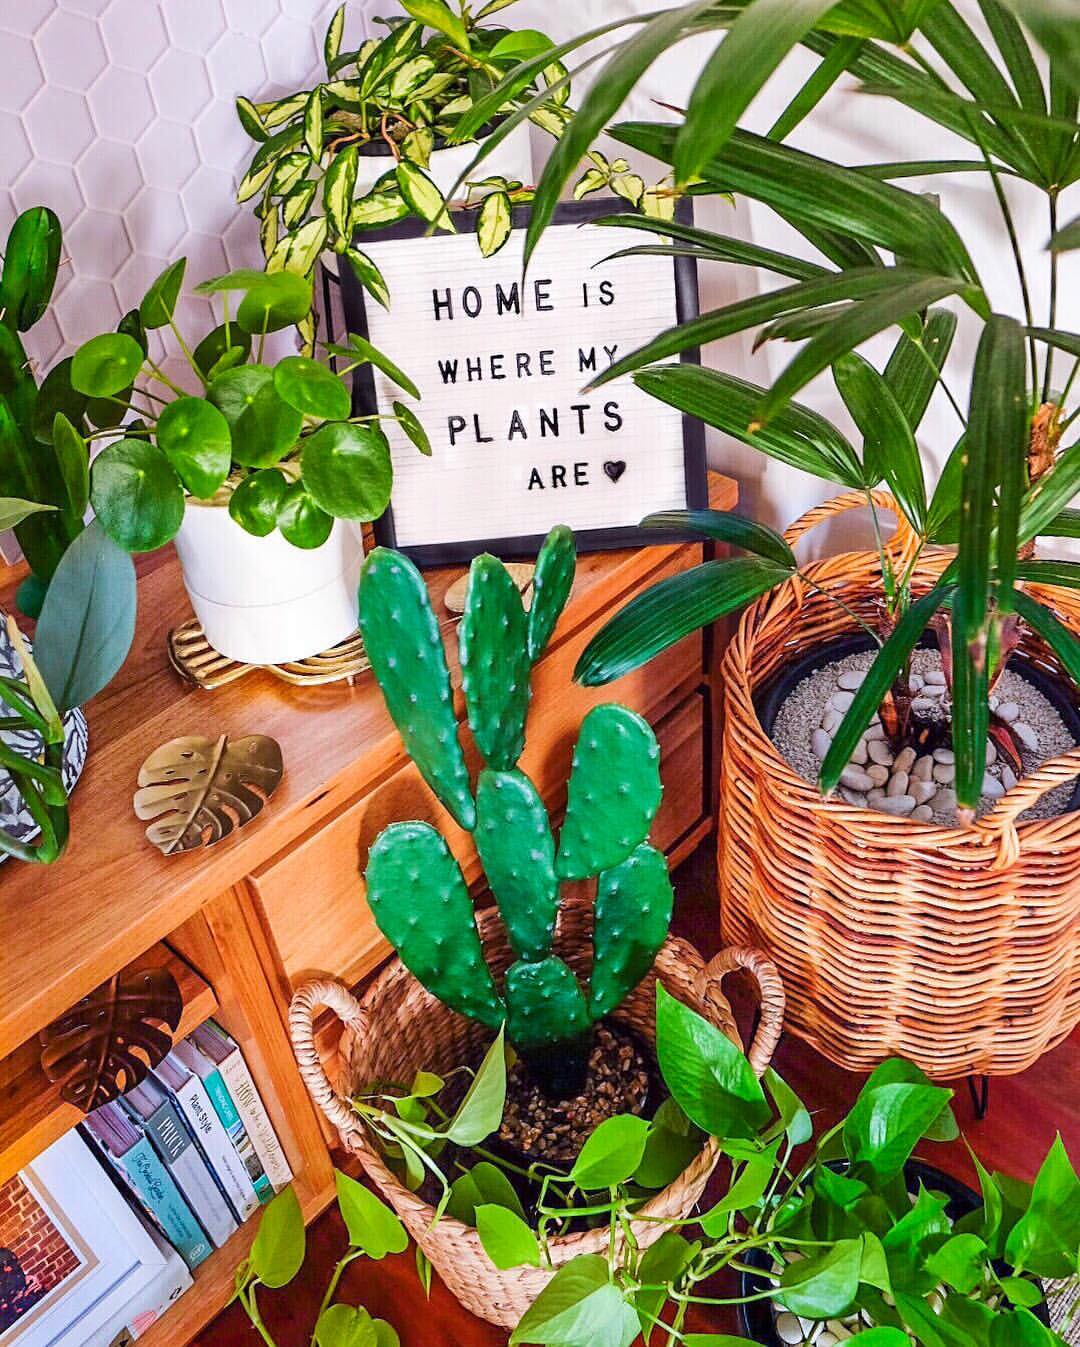 Living Props: Most photogenic plants to style and create with